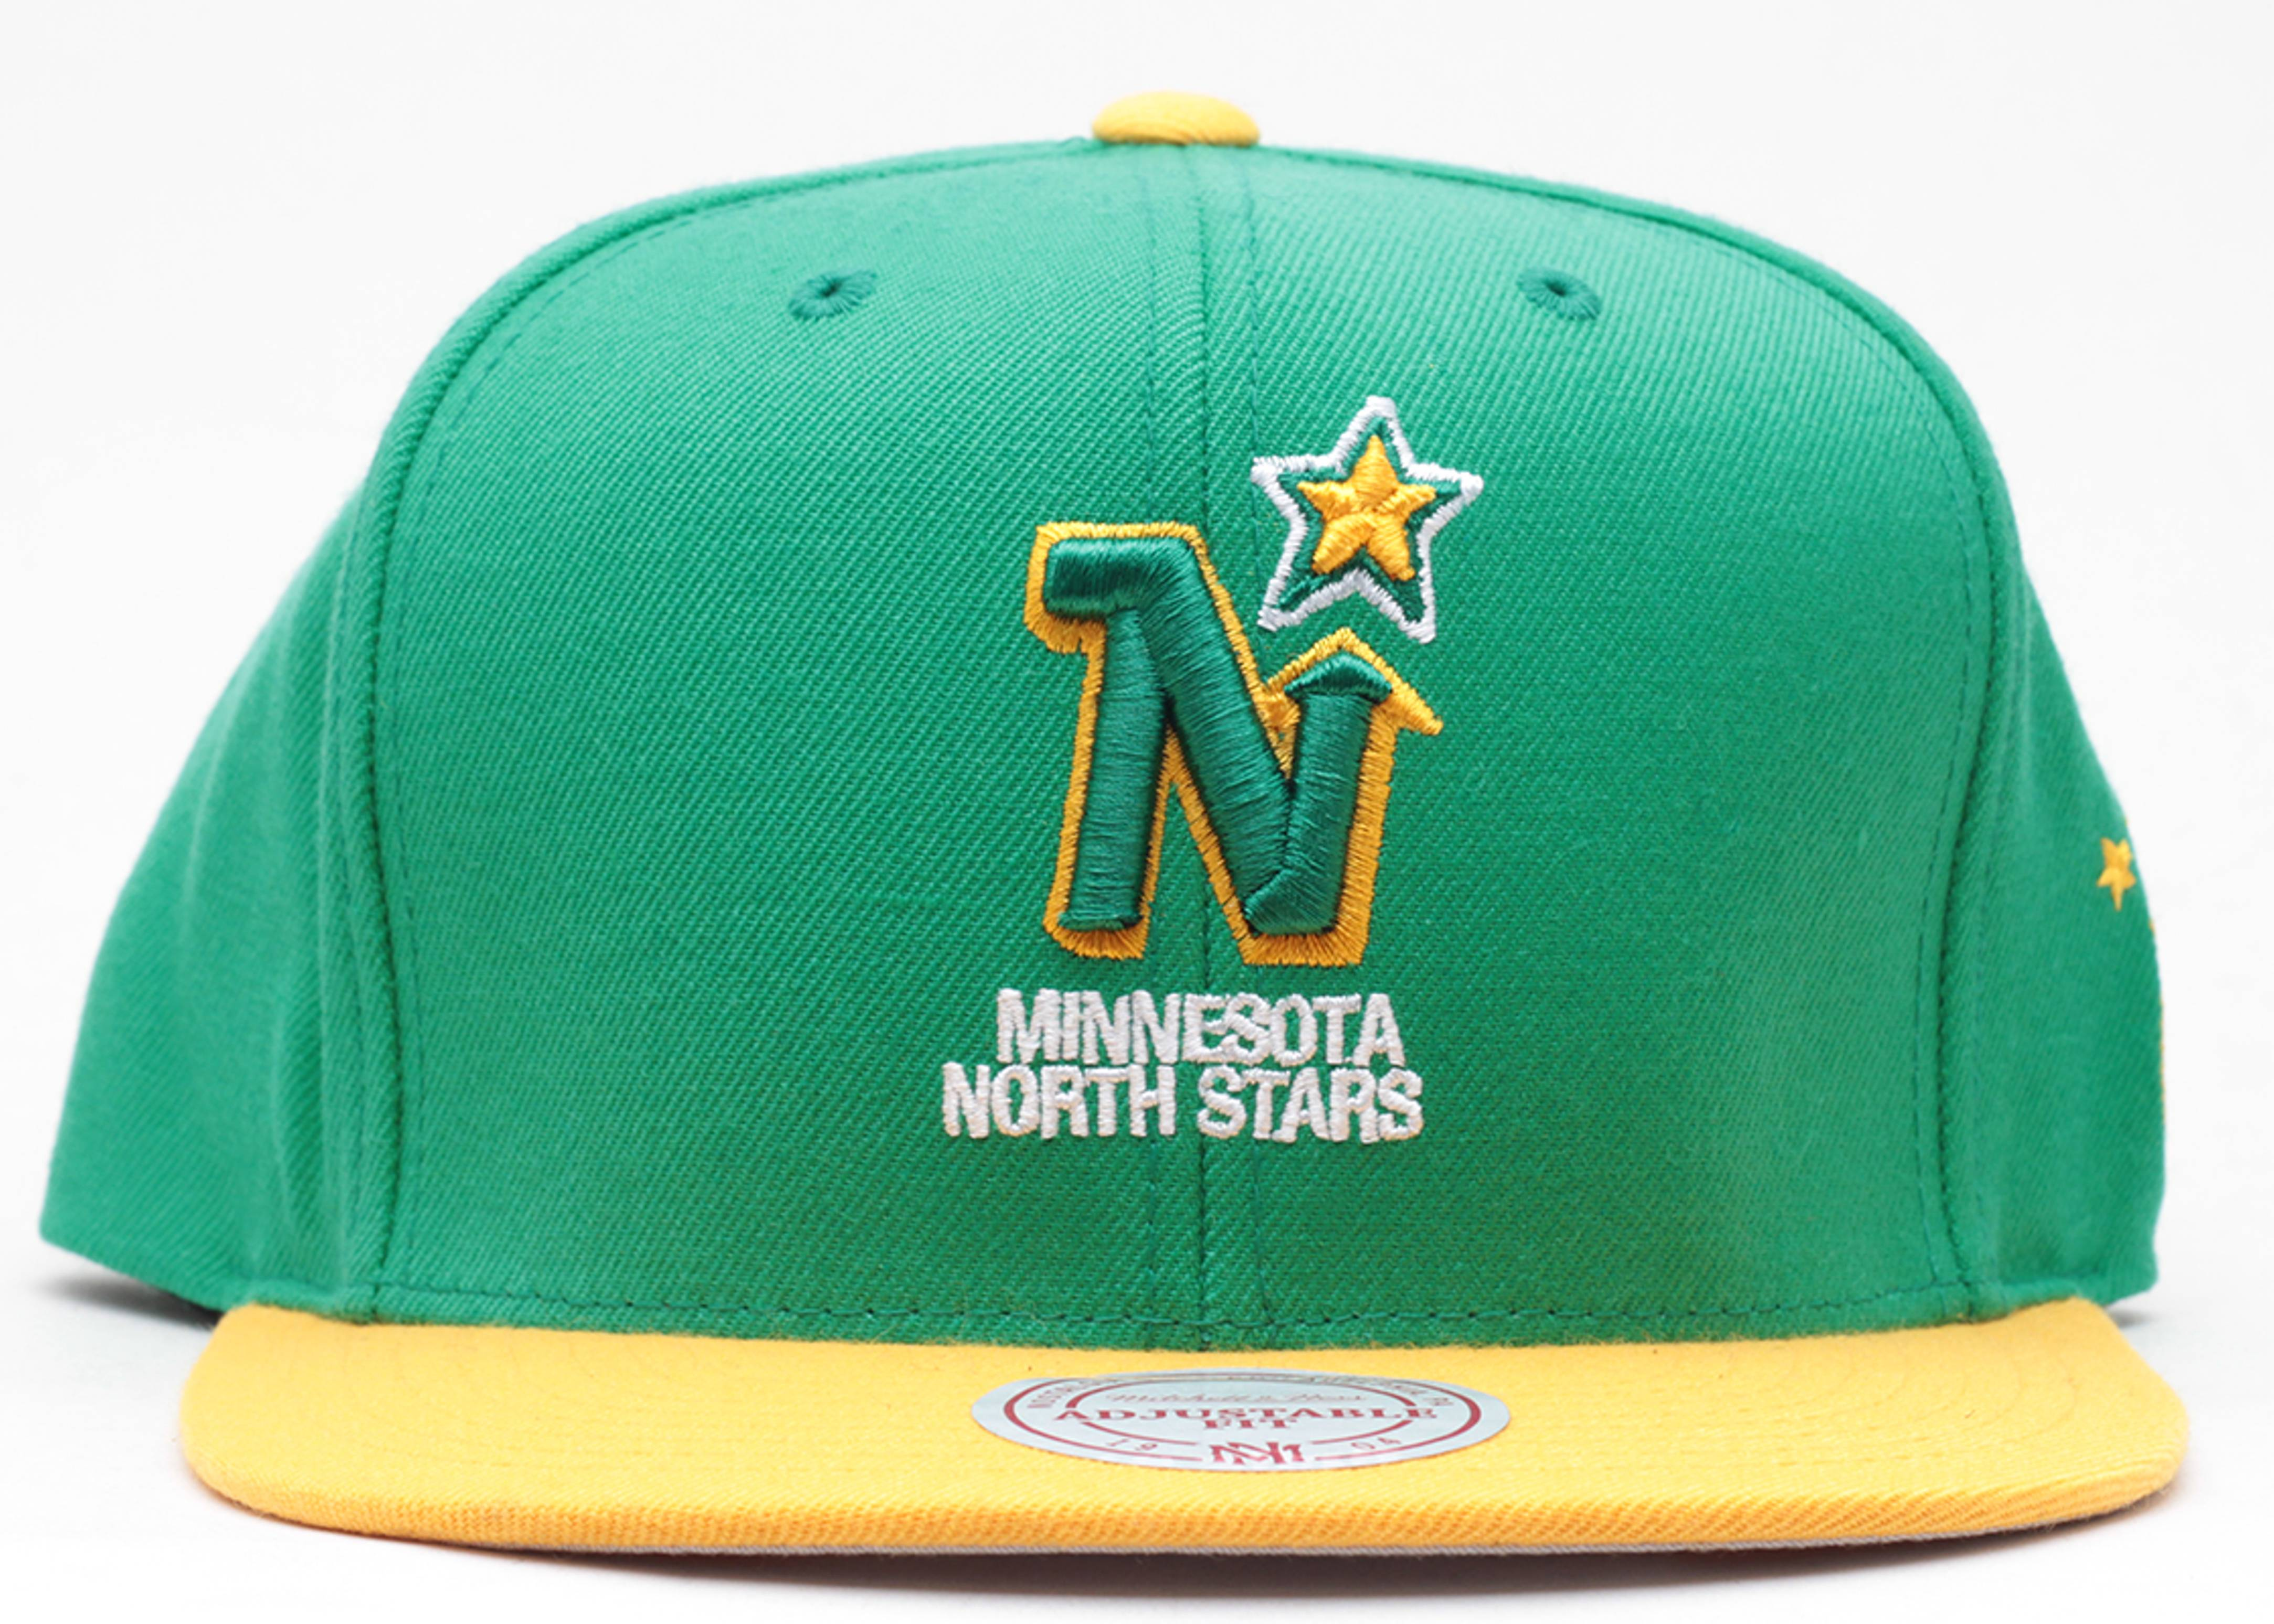 minnesota north stars snap-back